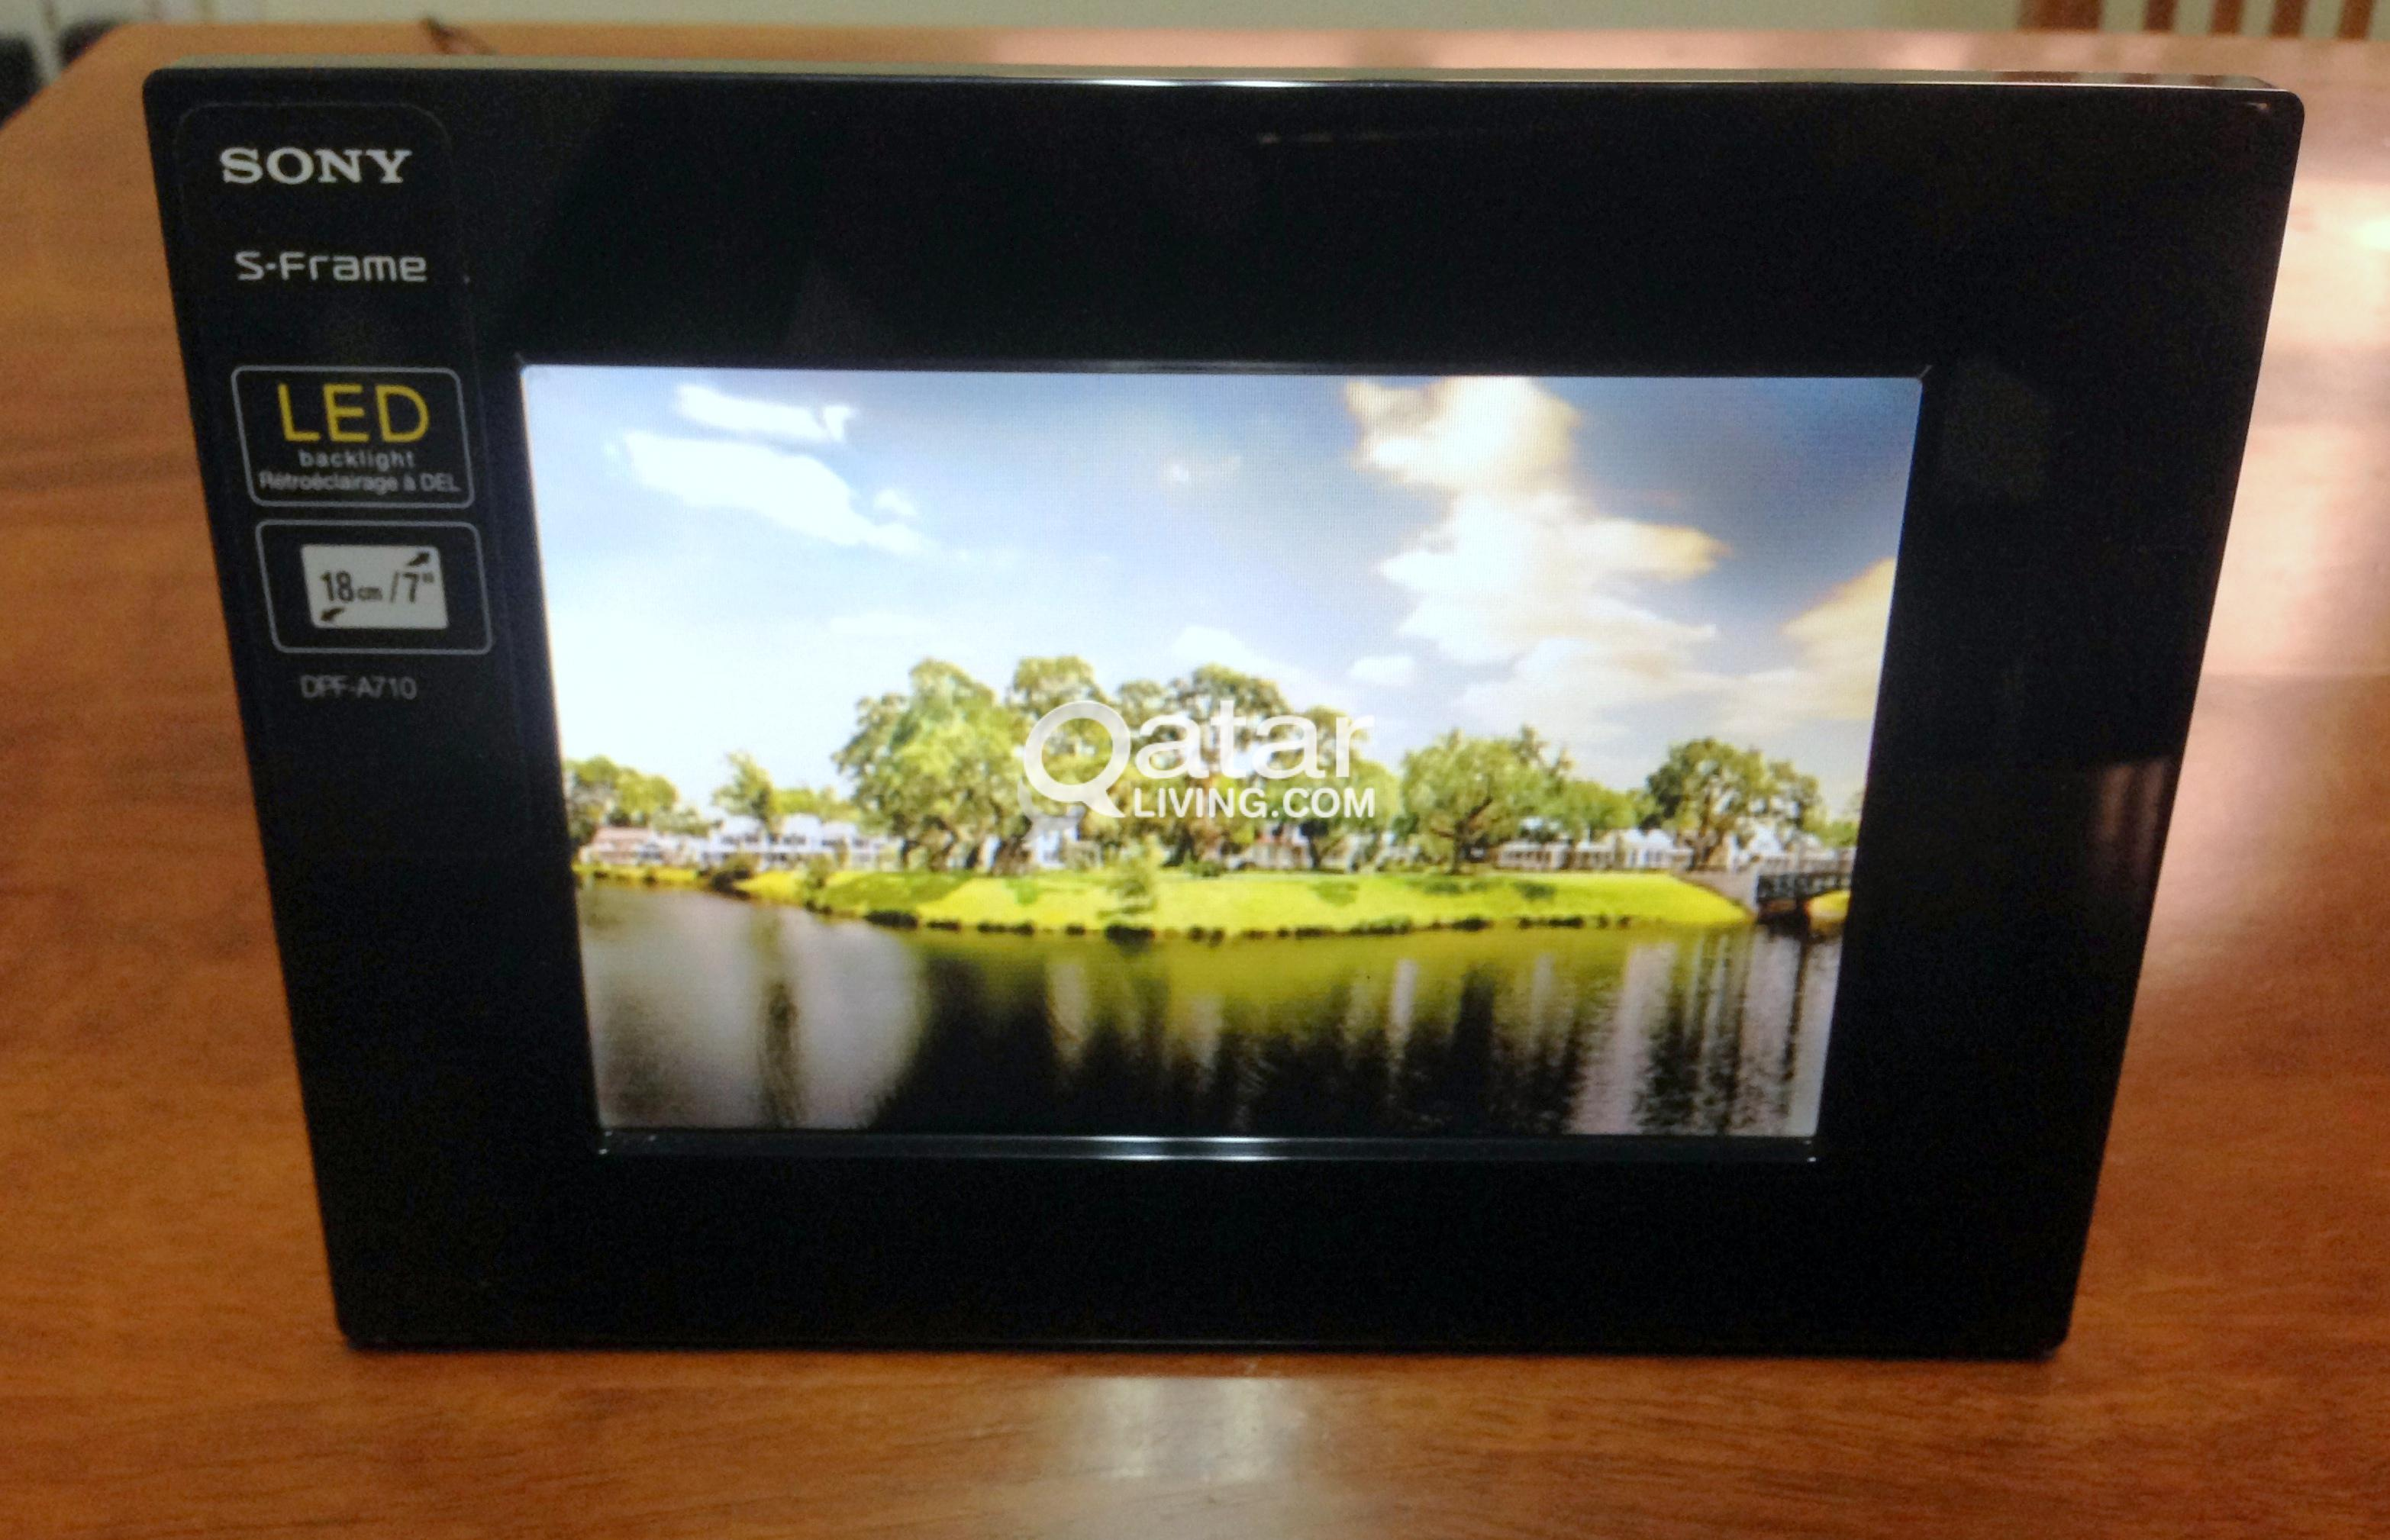 Sony Digital Photo Frame | Qatar Living